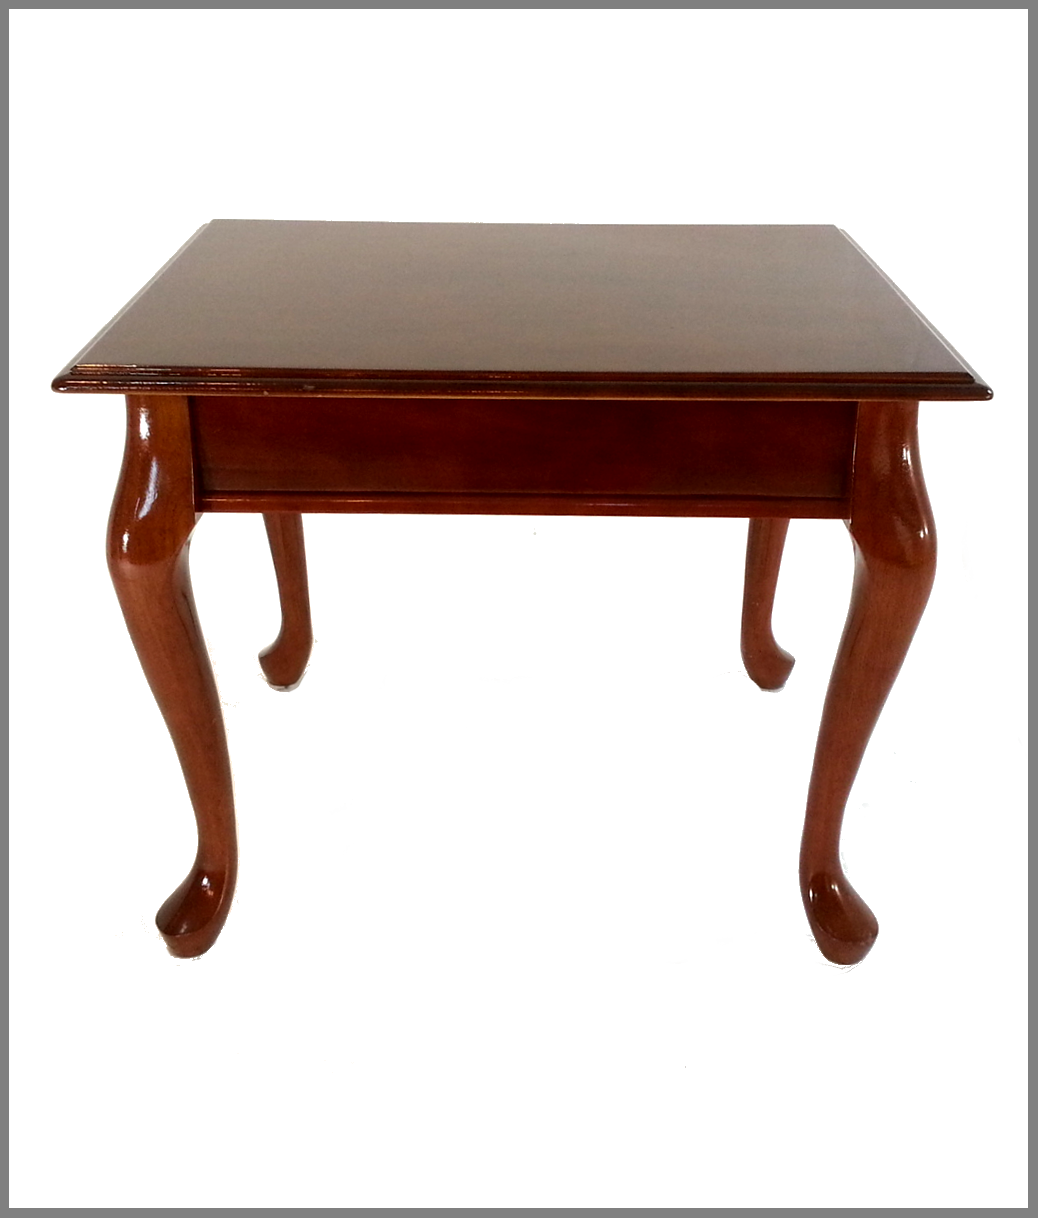 coffee table end square with drawer used doctor tables gumtree furniture minwax stain colors pine laura ashley dining decorating chocolate brown couch acme jersey city handmade